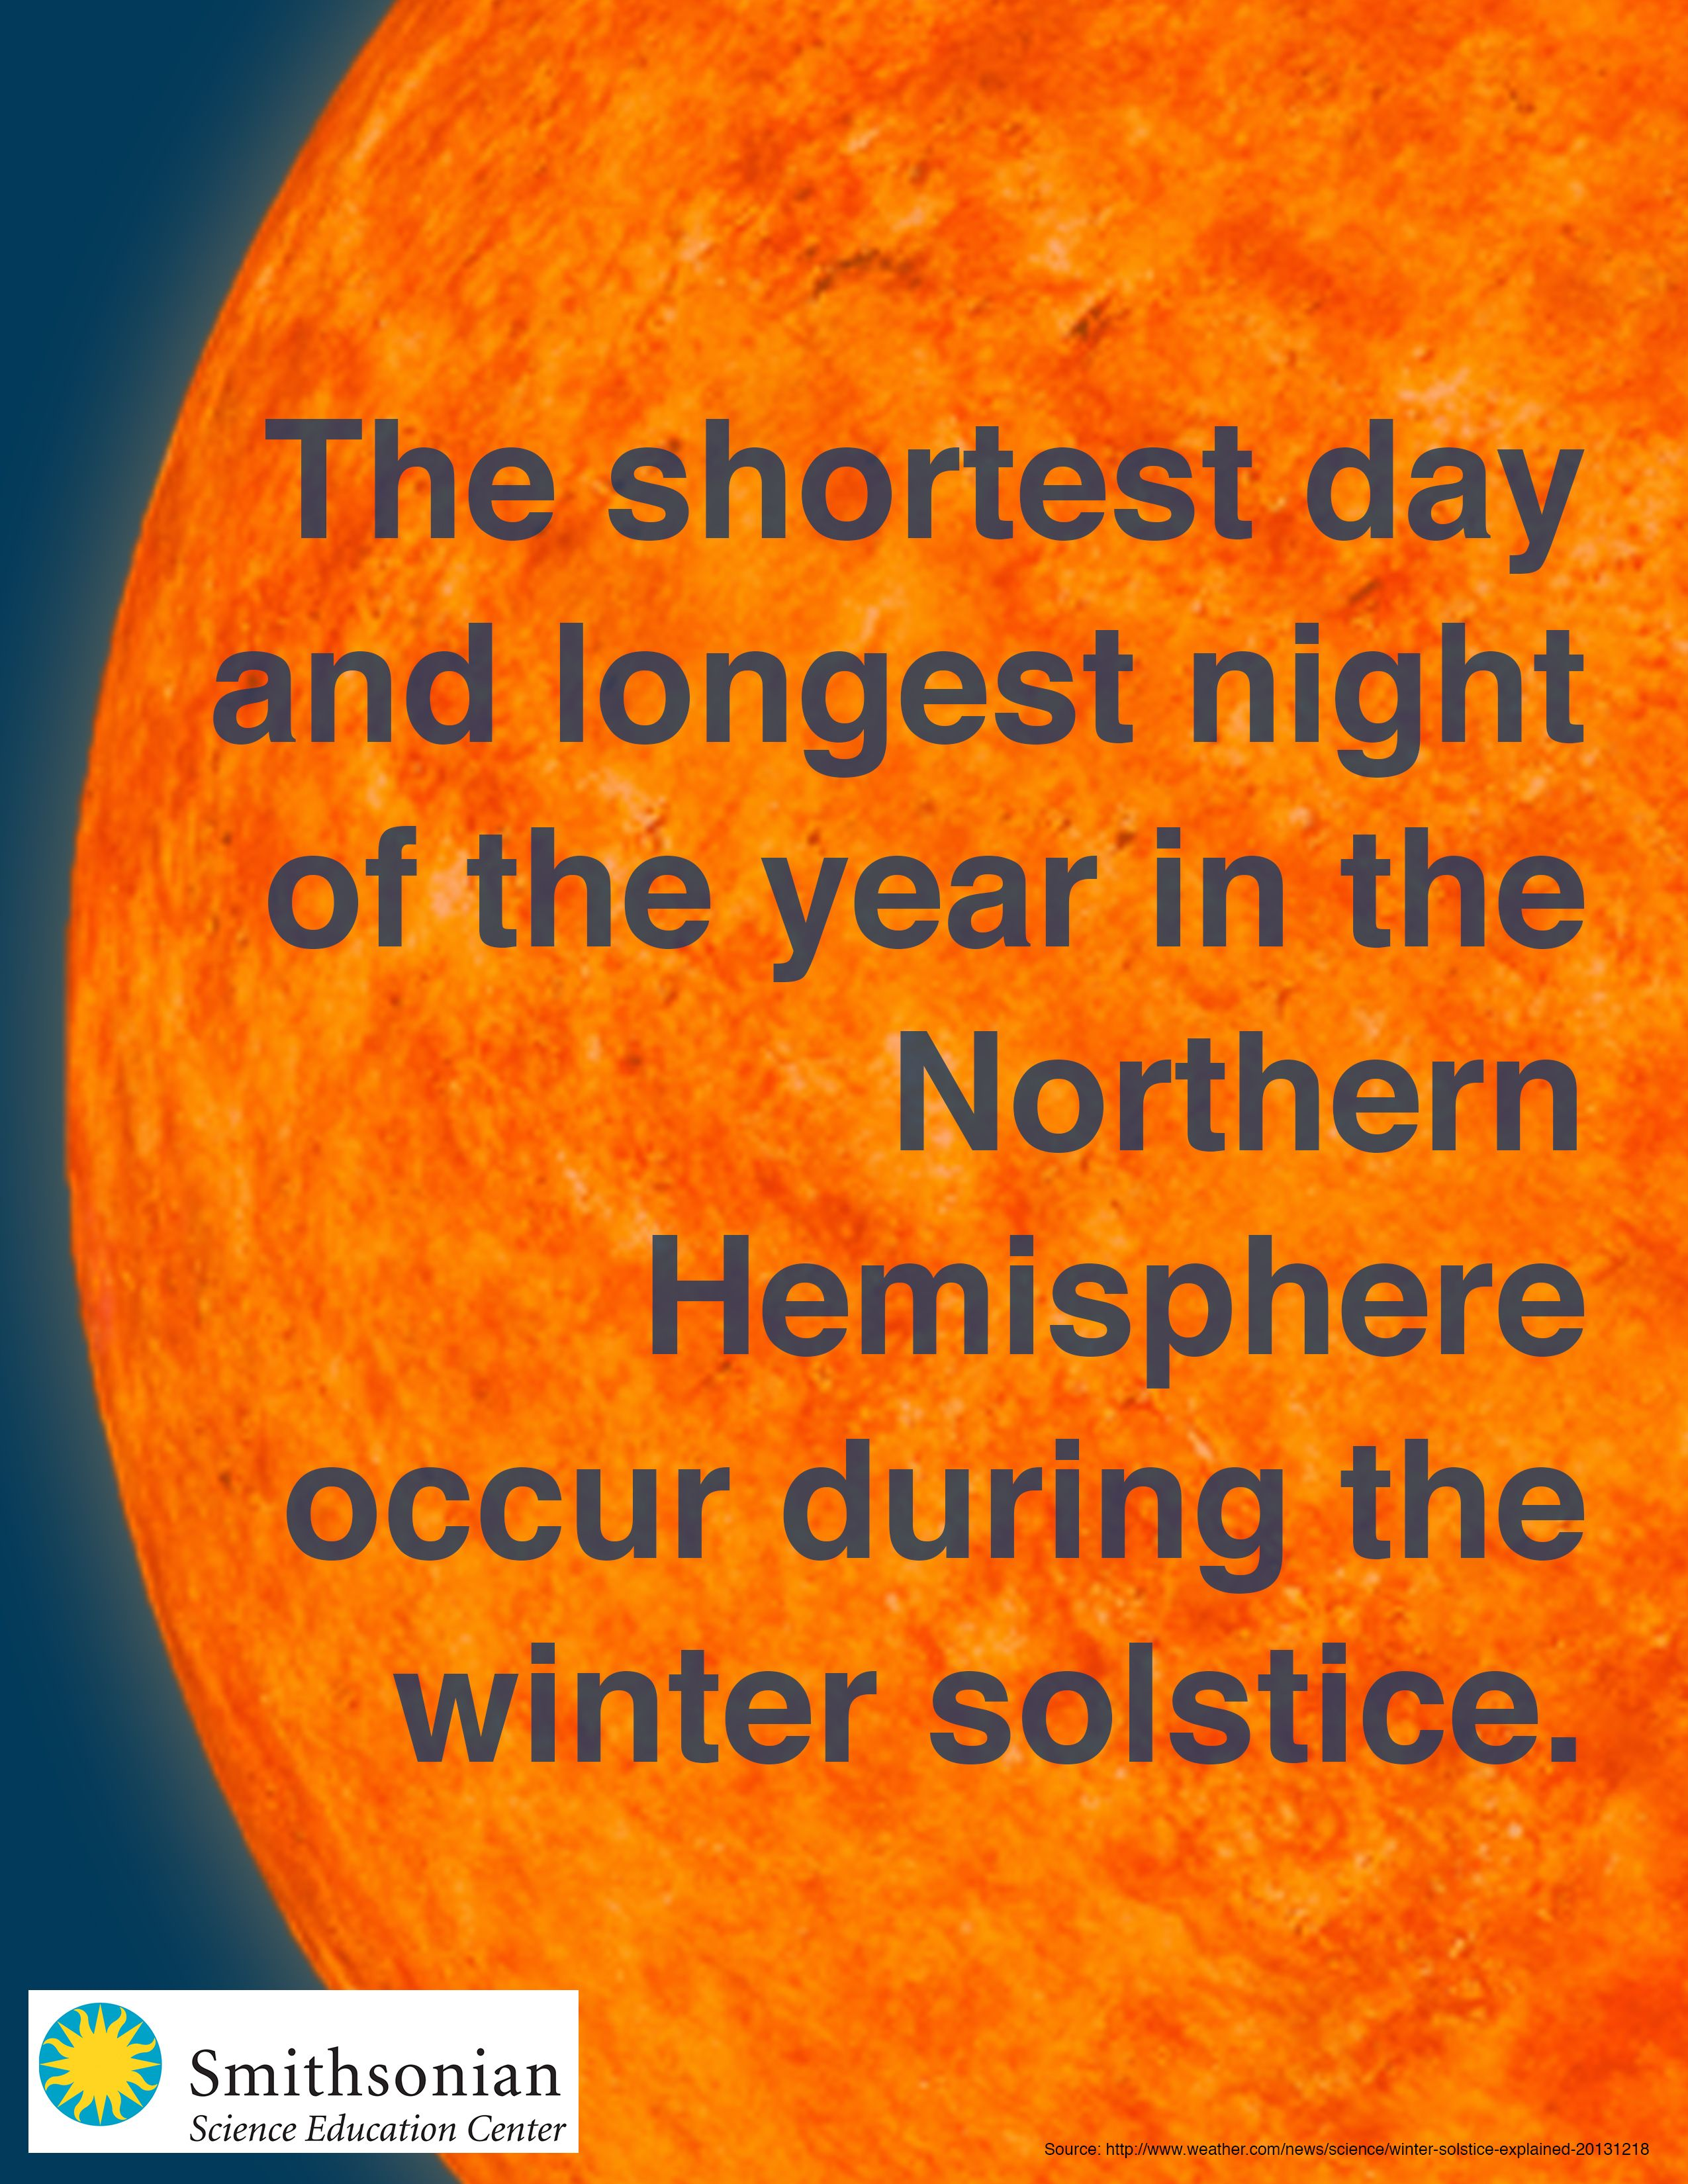 Interesting facts about the winter solstice